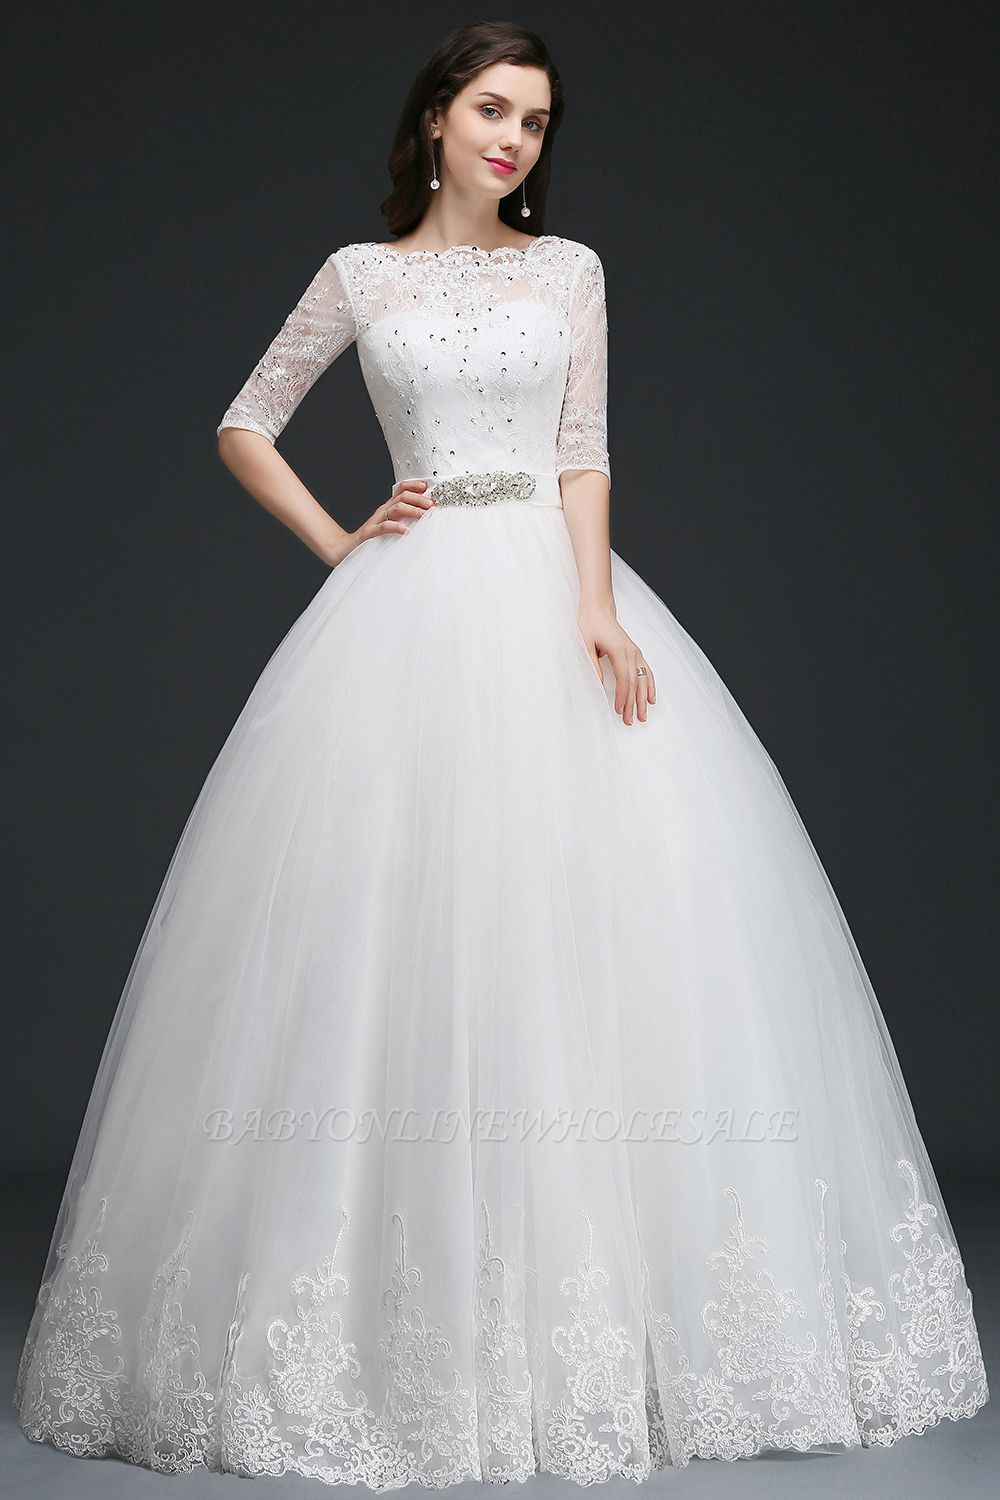 AMERICA | Ball Gown Floor Length Tulle Glamorous Wedding Dresses with Lace | www.babyonlinewholesale.com